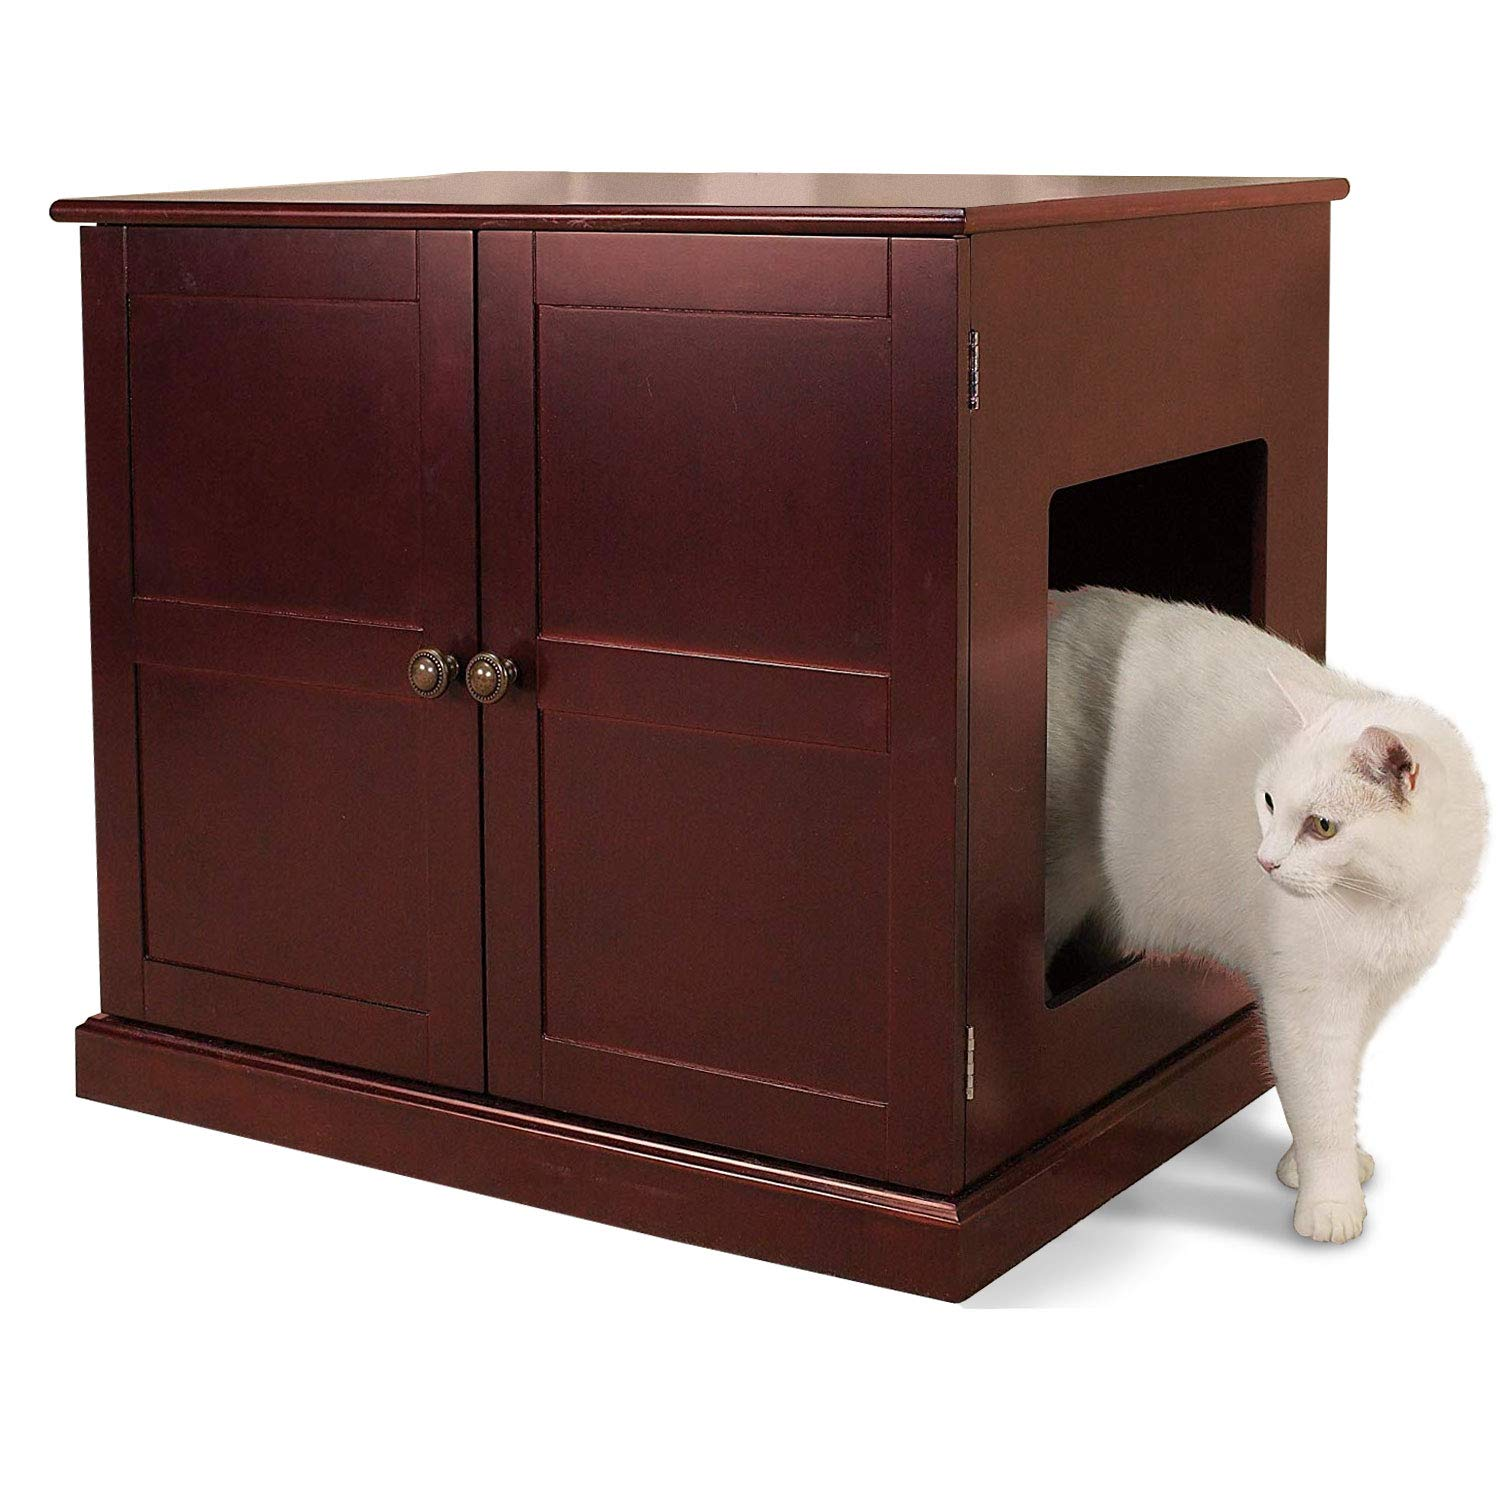 Pet Studio Meow Town Concord Litter Box Cabinet Furniture for Cats and Kittens